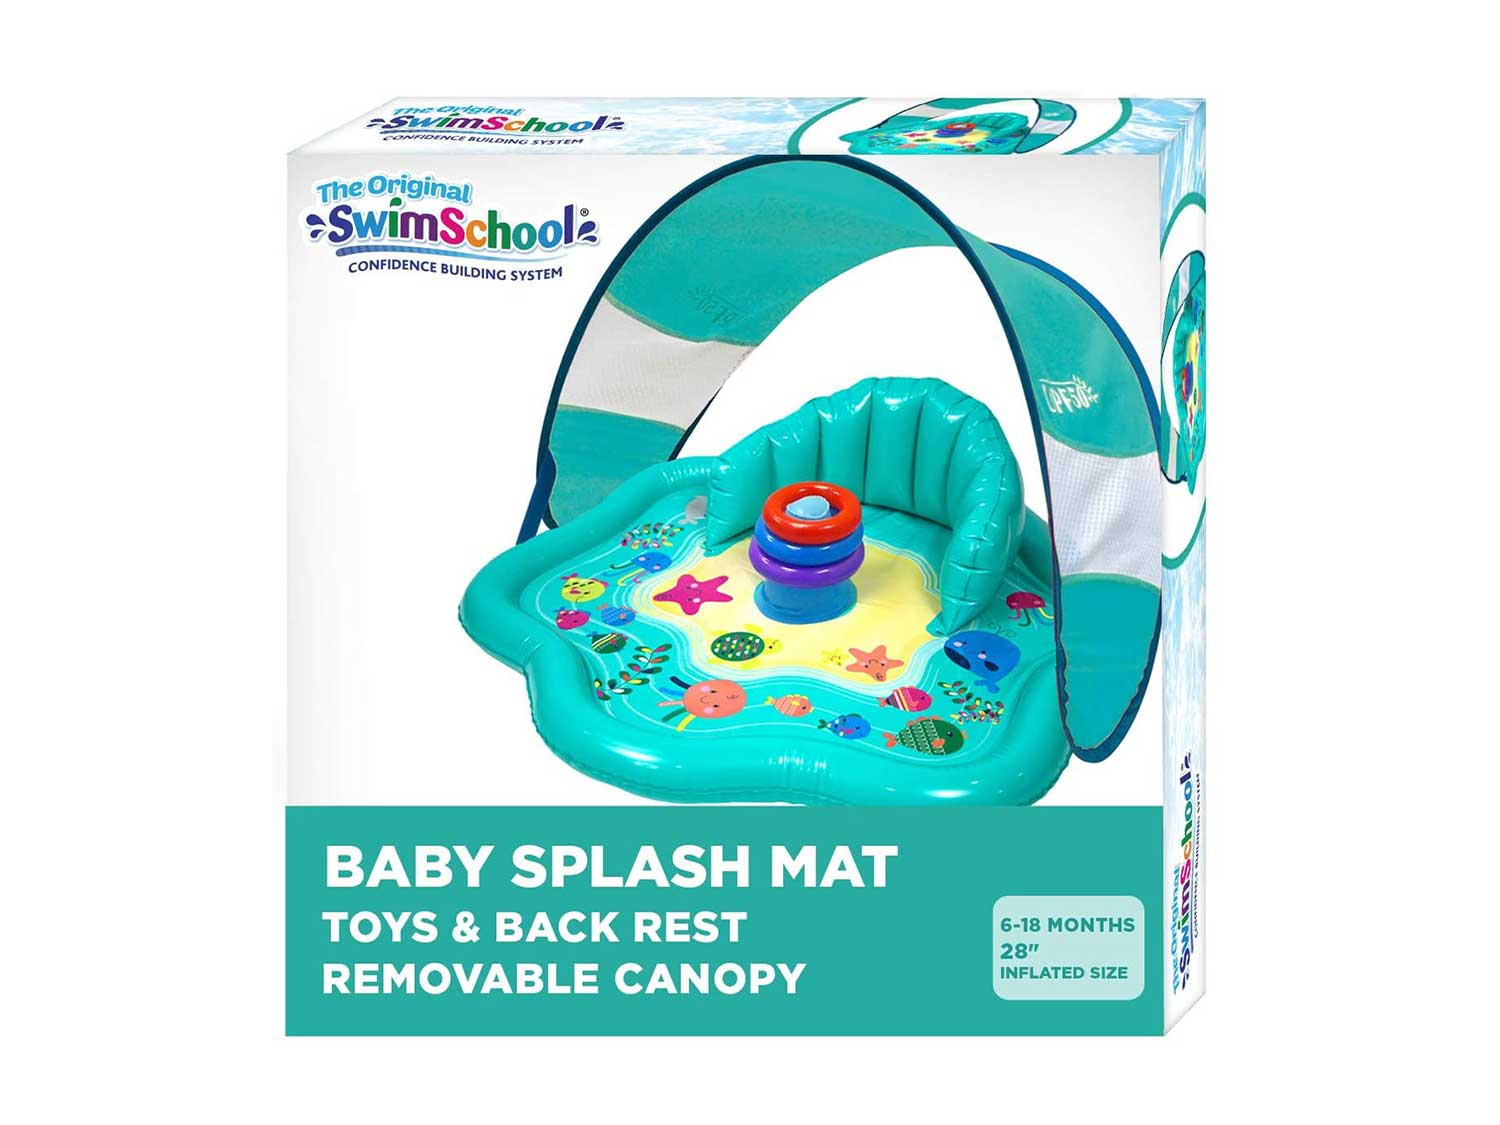 SwimSchool Splash Play Mat, Inflatable Kiddie Pool with Backrest and Canopy for Babies & Toddlers, Includes Three Toys, Multicolor